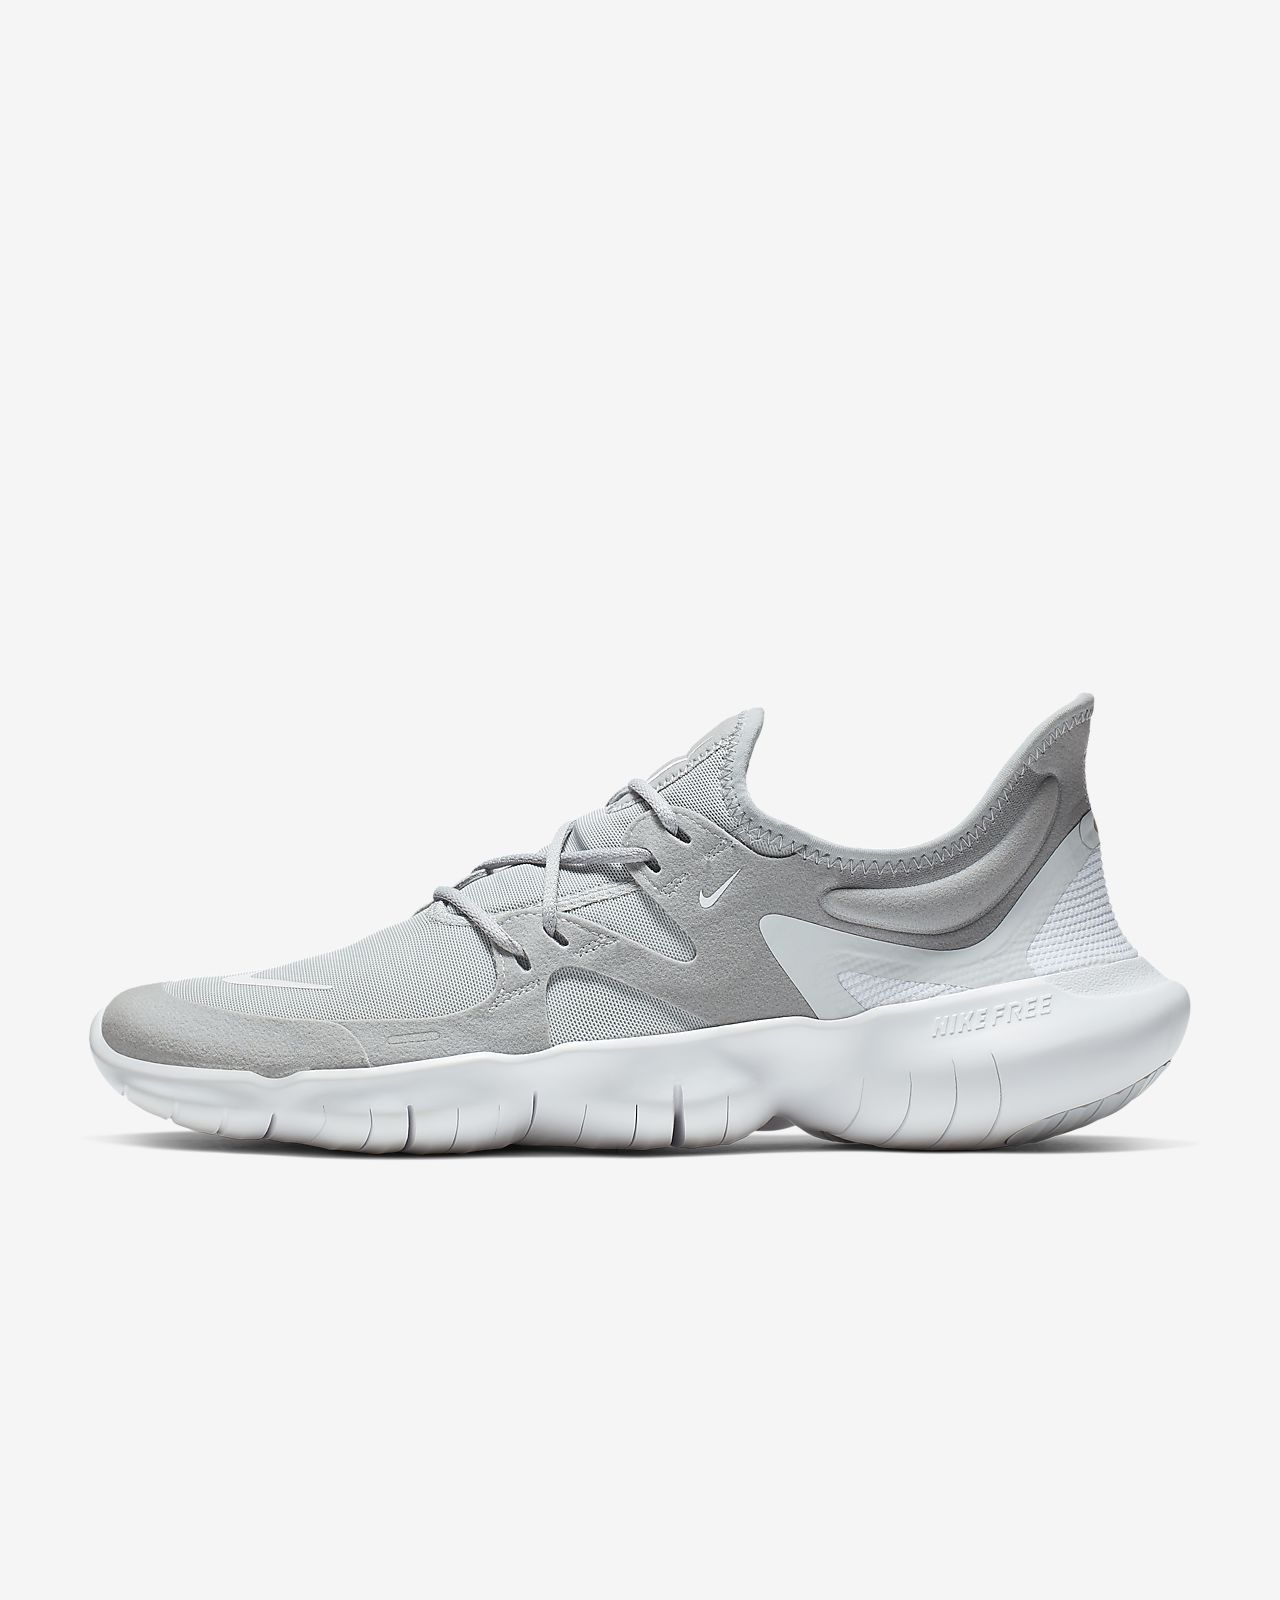 Nike Free RN 5.0 Men\u0027s Running Shoe